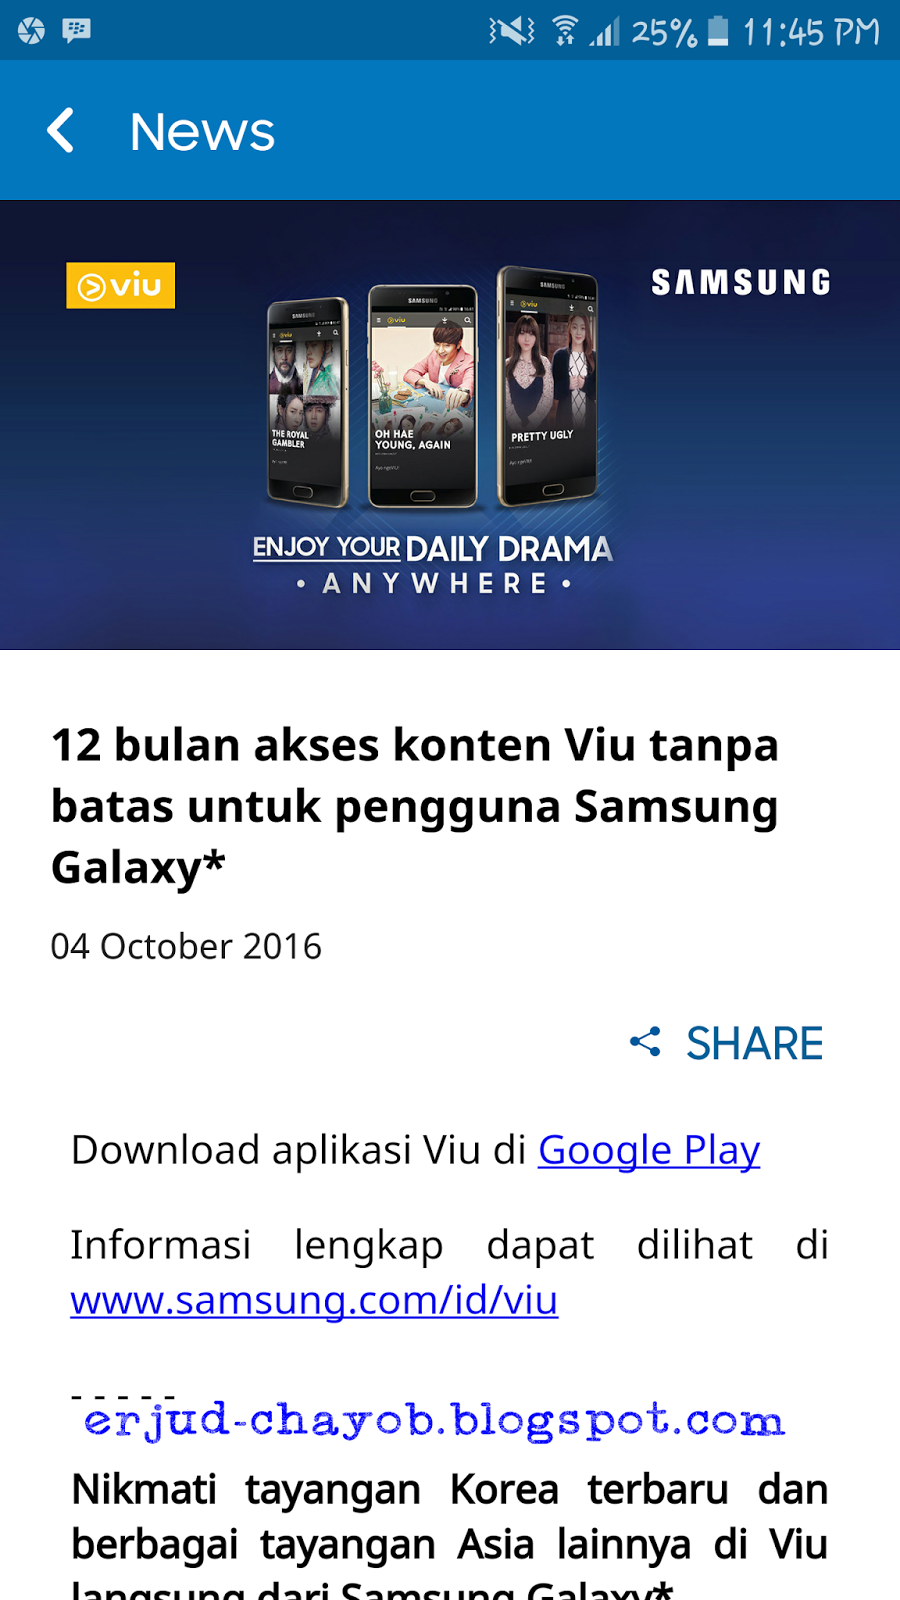 Cara Download Subtitle VIU | ErJud Chayob's Blog